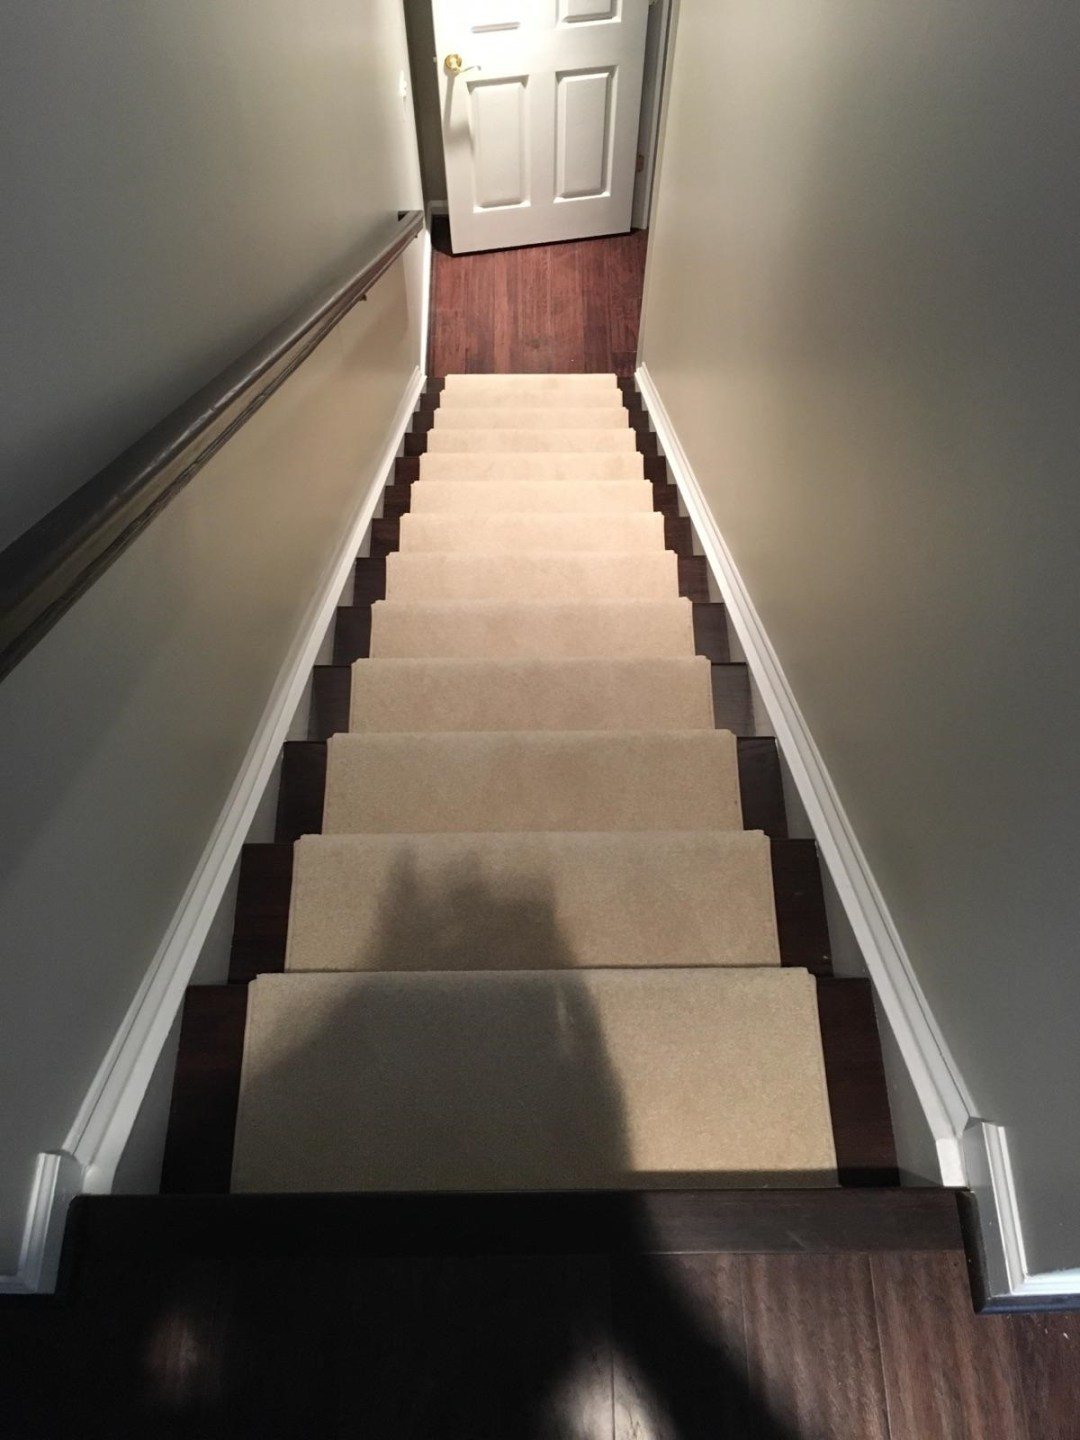 Stair runner jobs